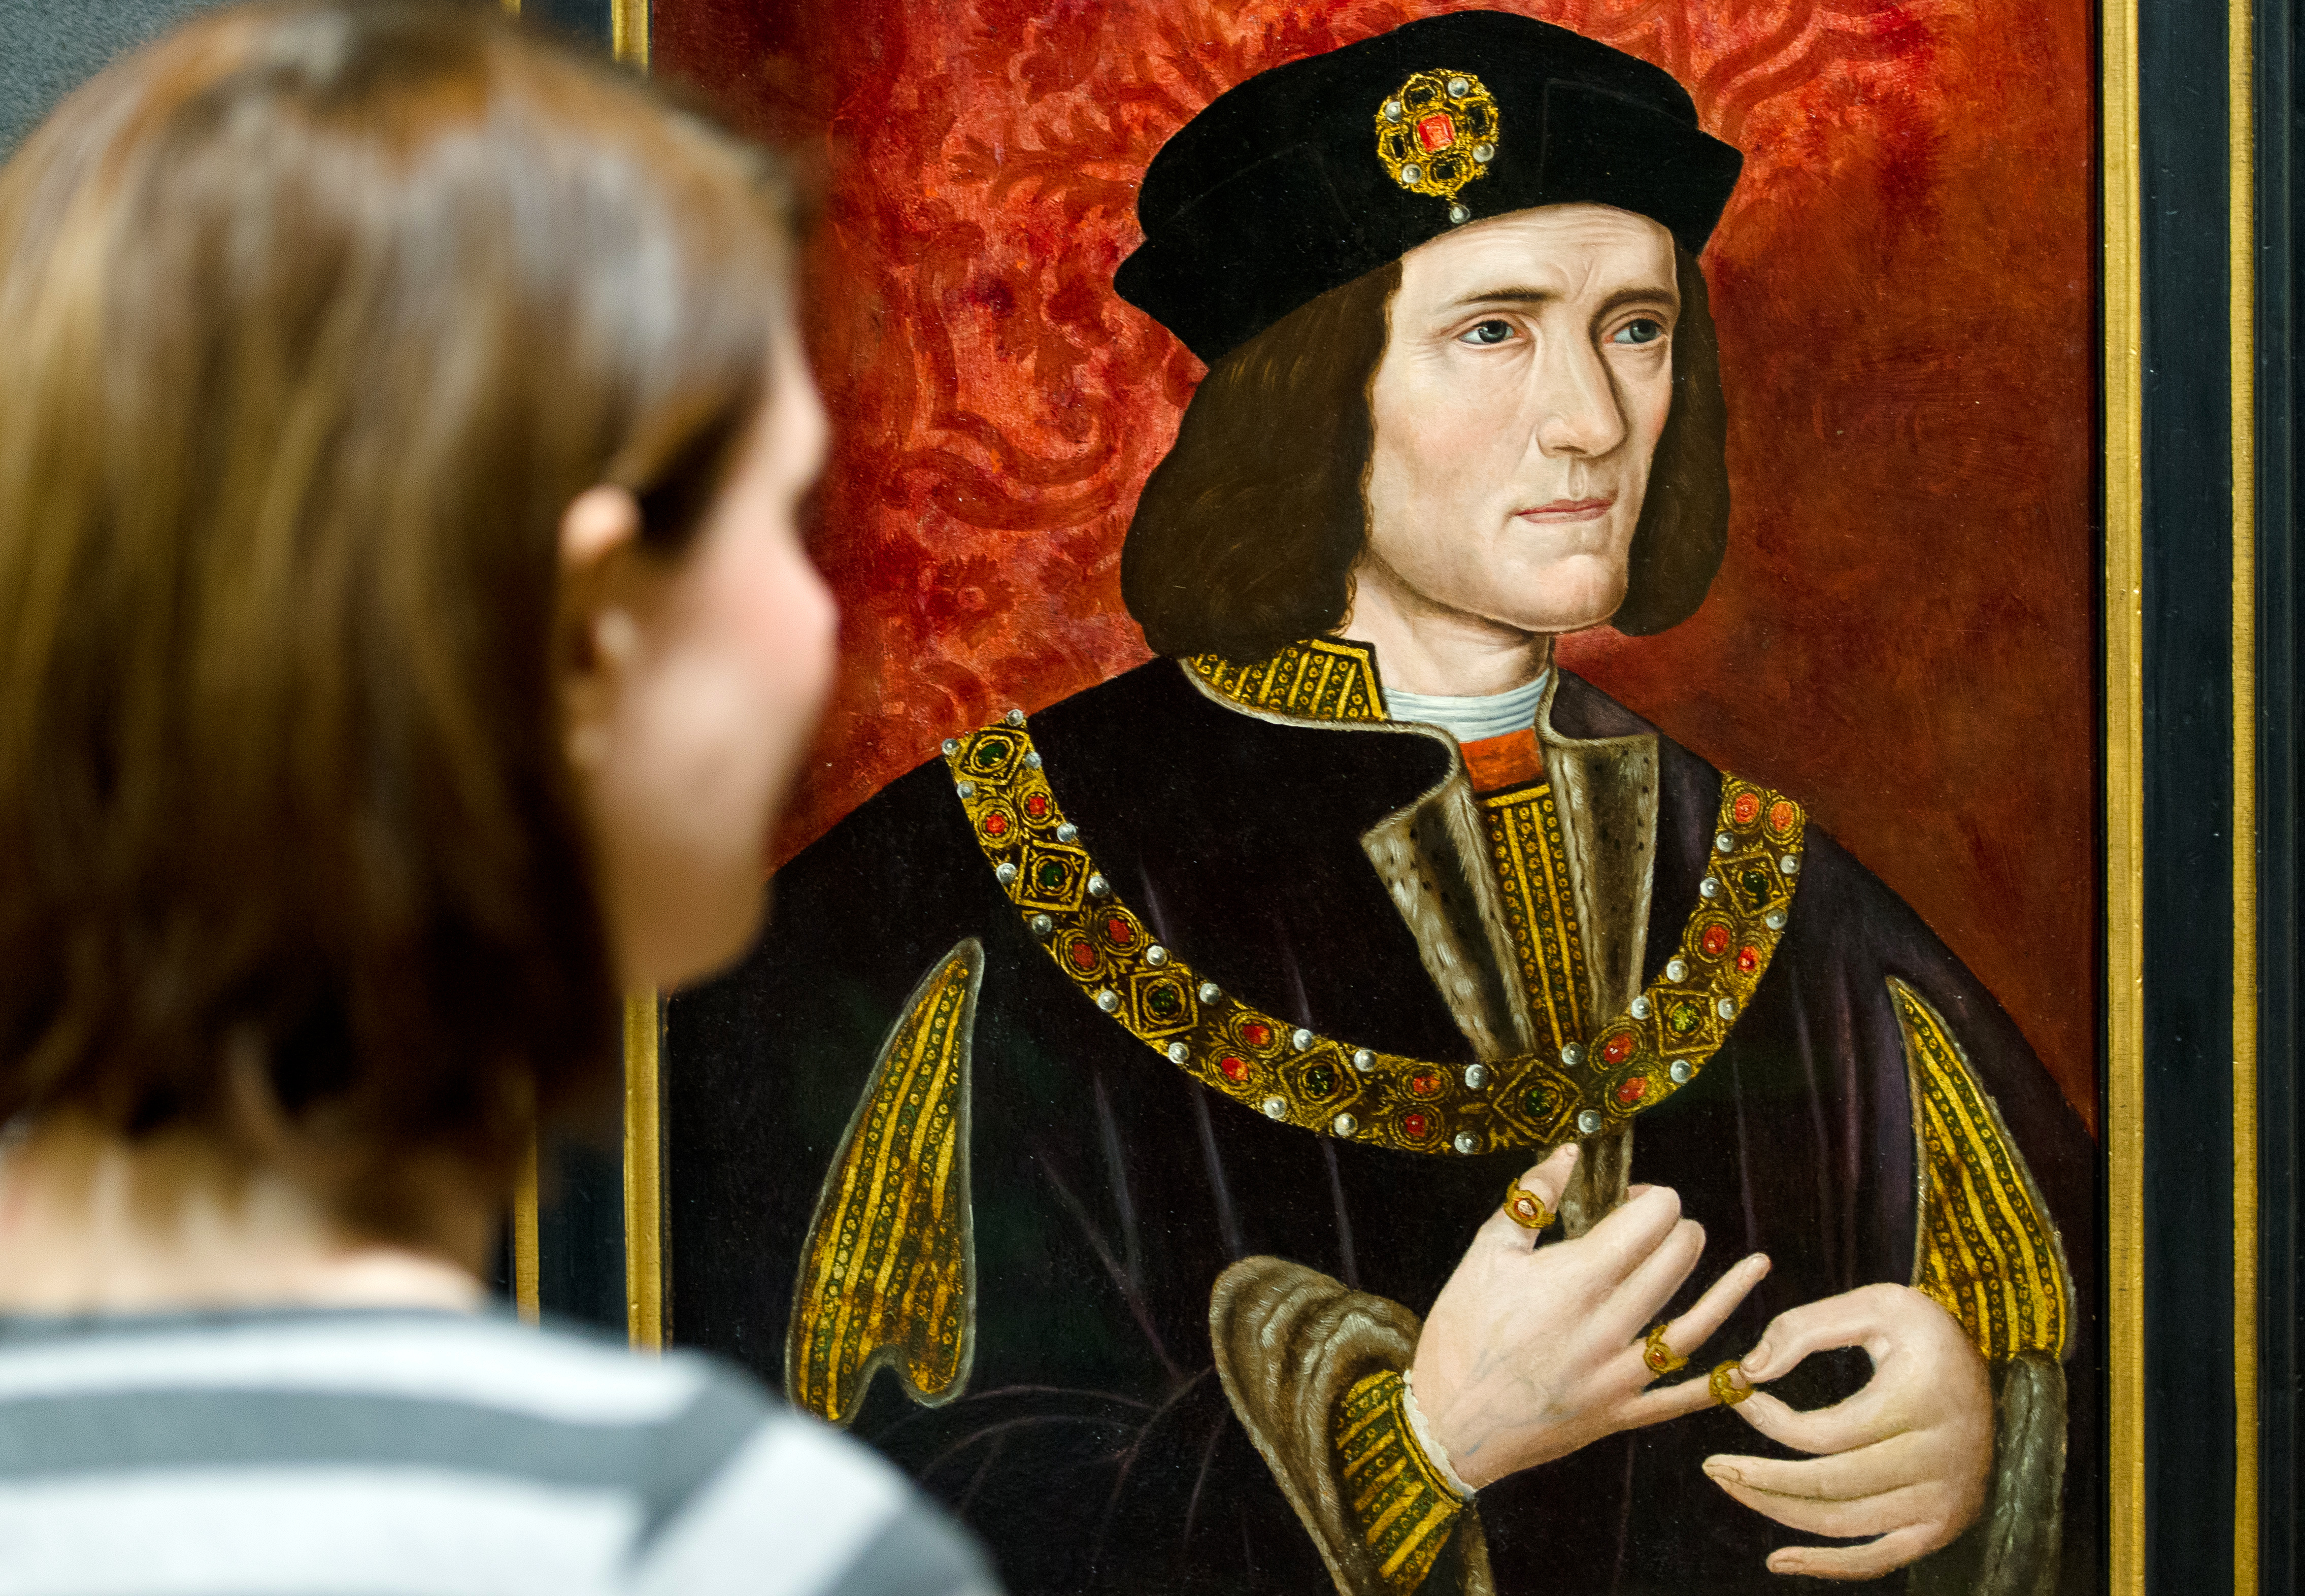 A painting of Britain's King Richard III by an unknown artist is displayed in the National Portrait Gallery in central London on January 25, 2013.